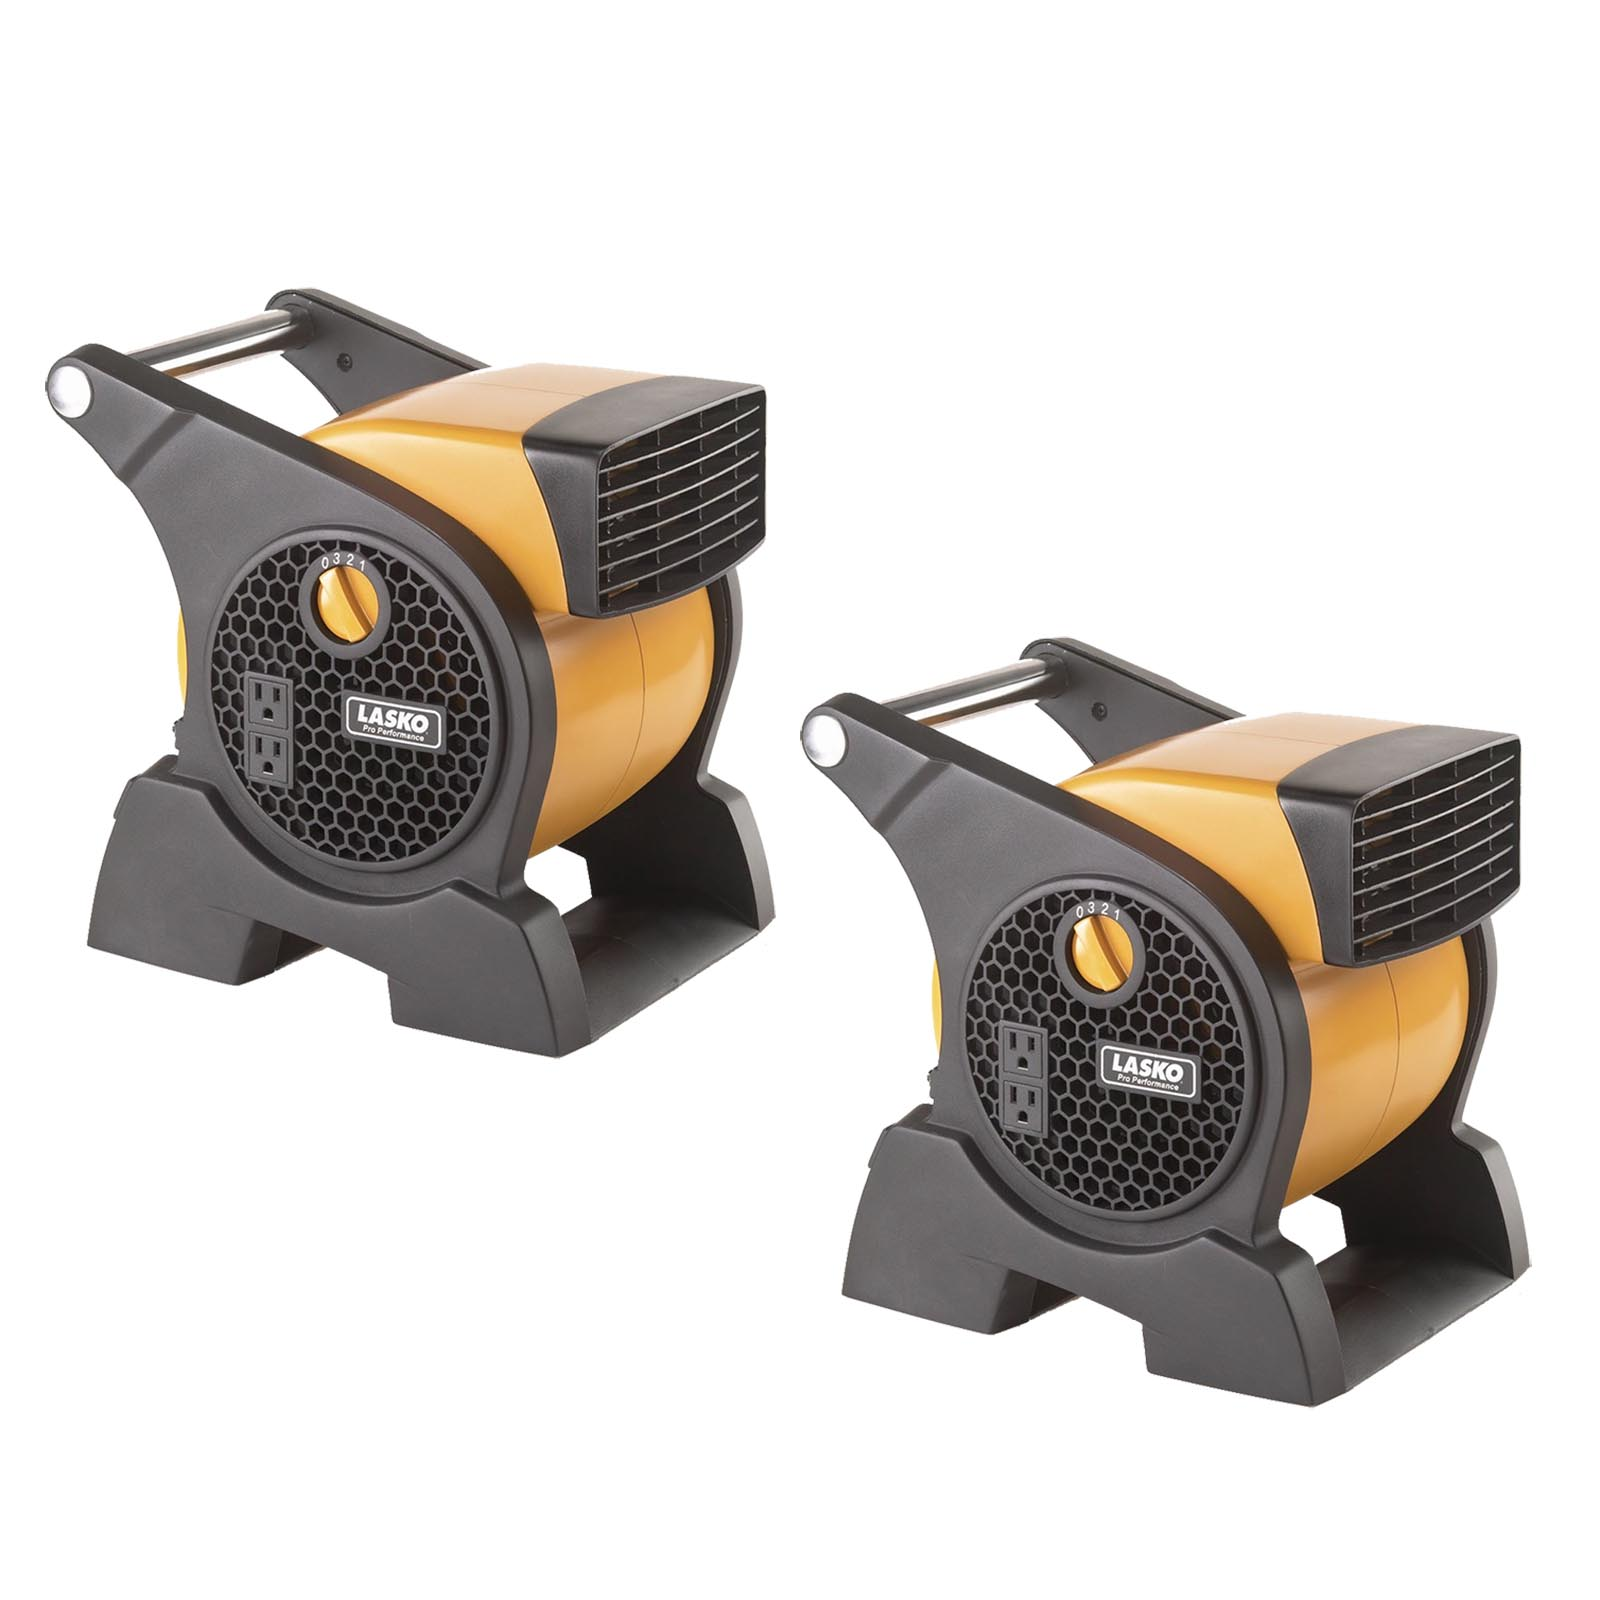 Lasko Pro Performance 3 Speed High Velocity Durable Utility Blower Fan (2 Pack)